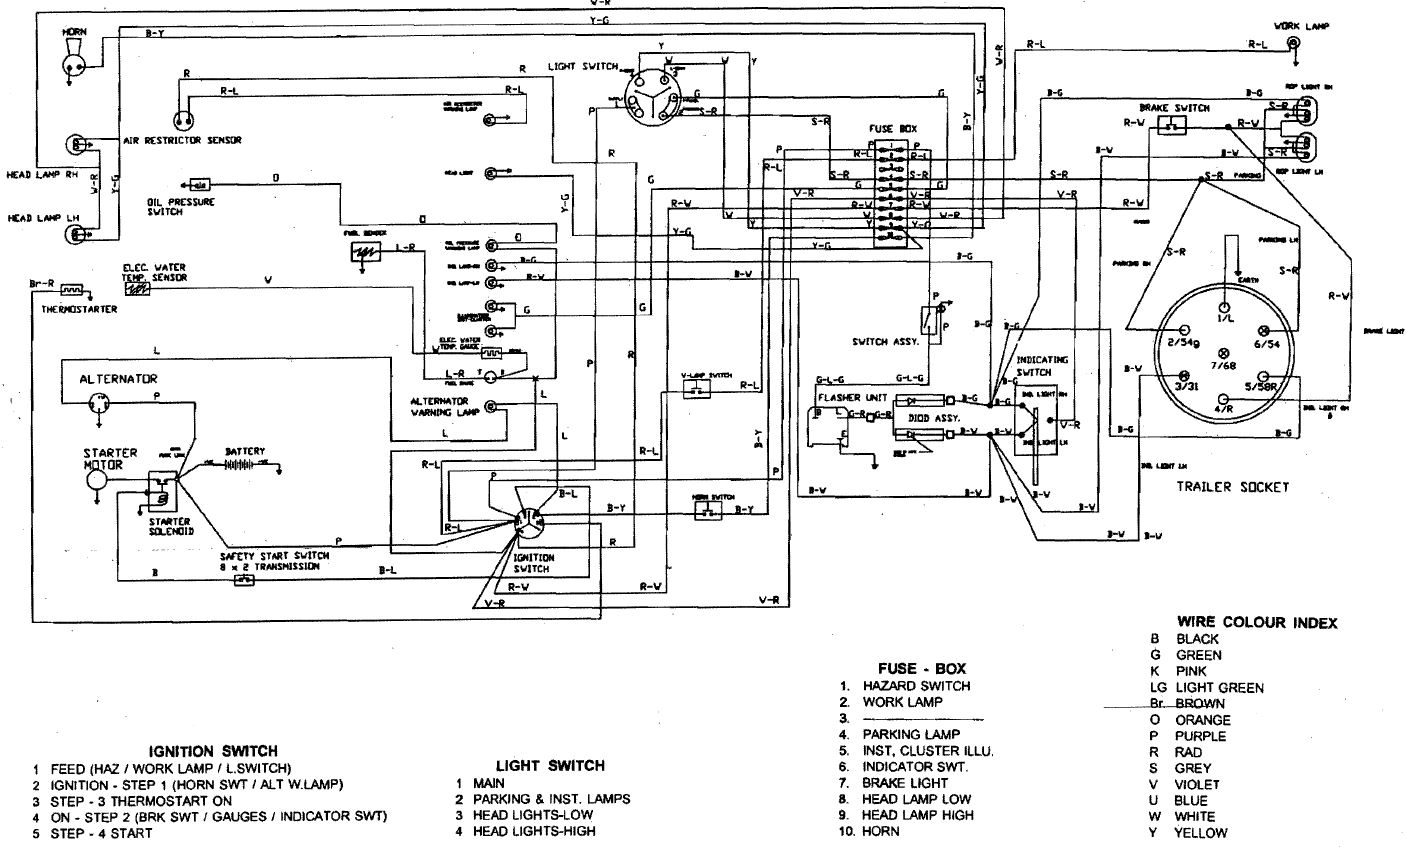 20158463319_b82d524c3d_o ignition switch wiring diagram john deere ignition wiring diagram at readyjetset.co